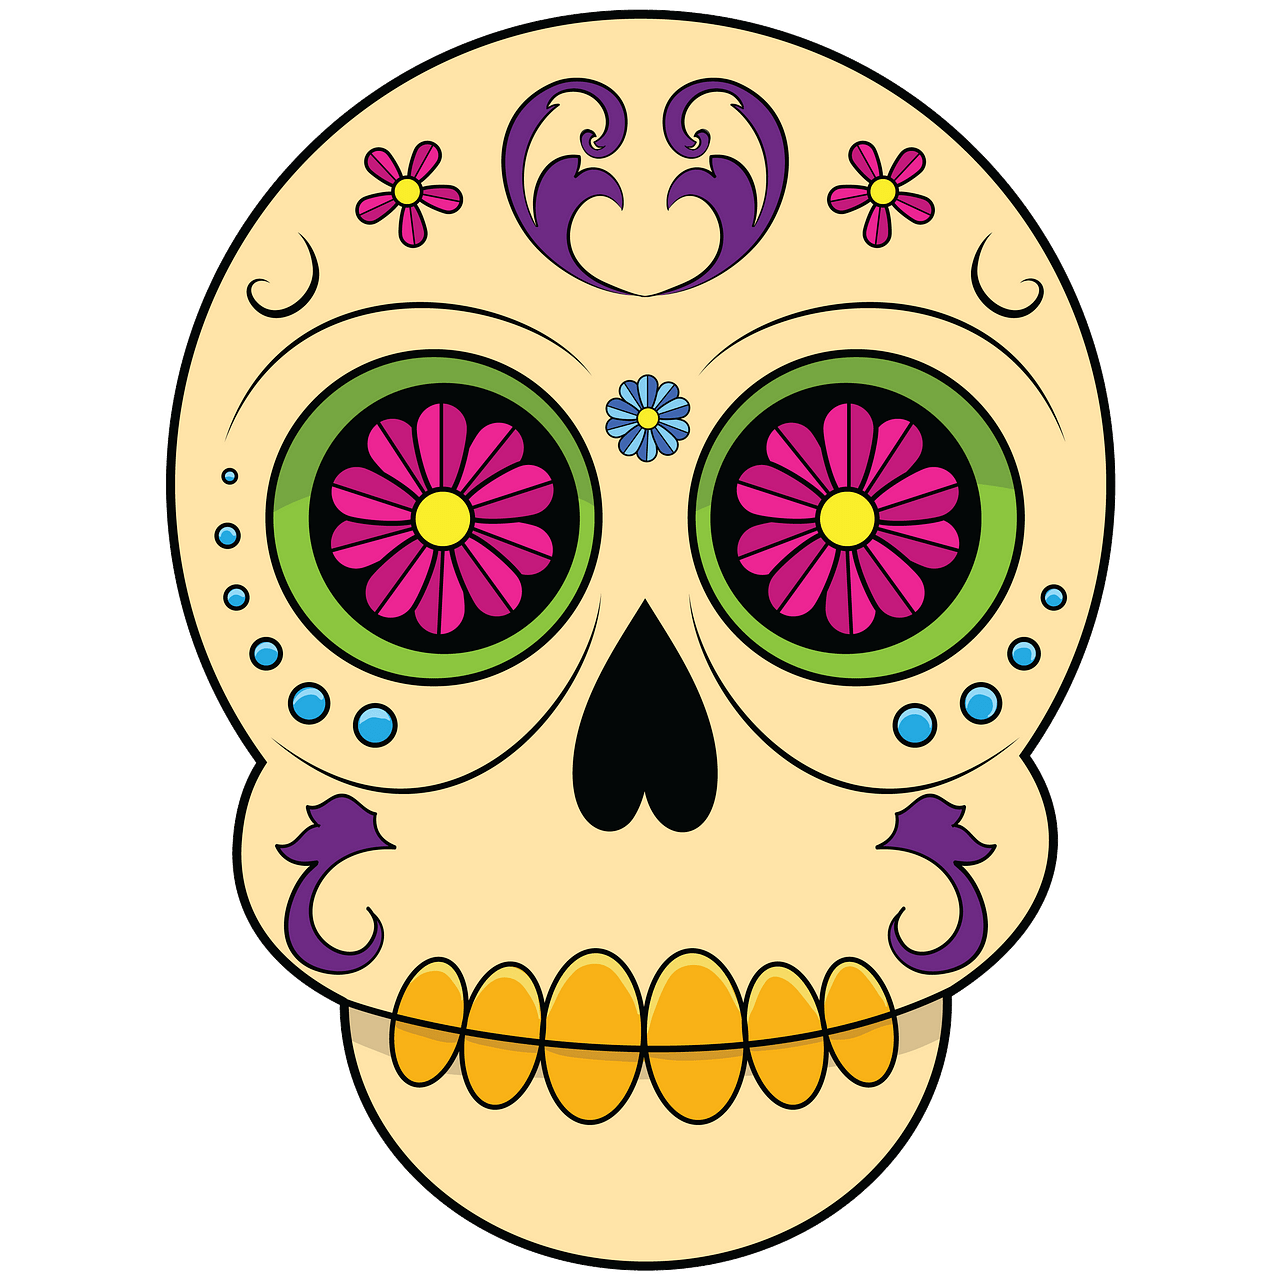 Sugar Skull clipart. Free download..